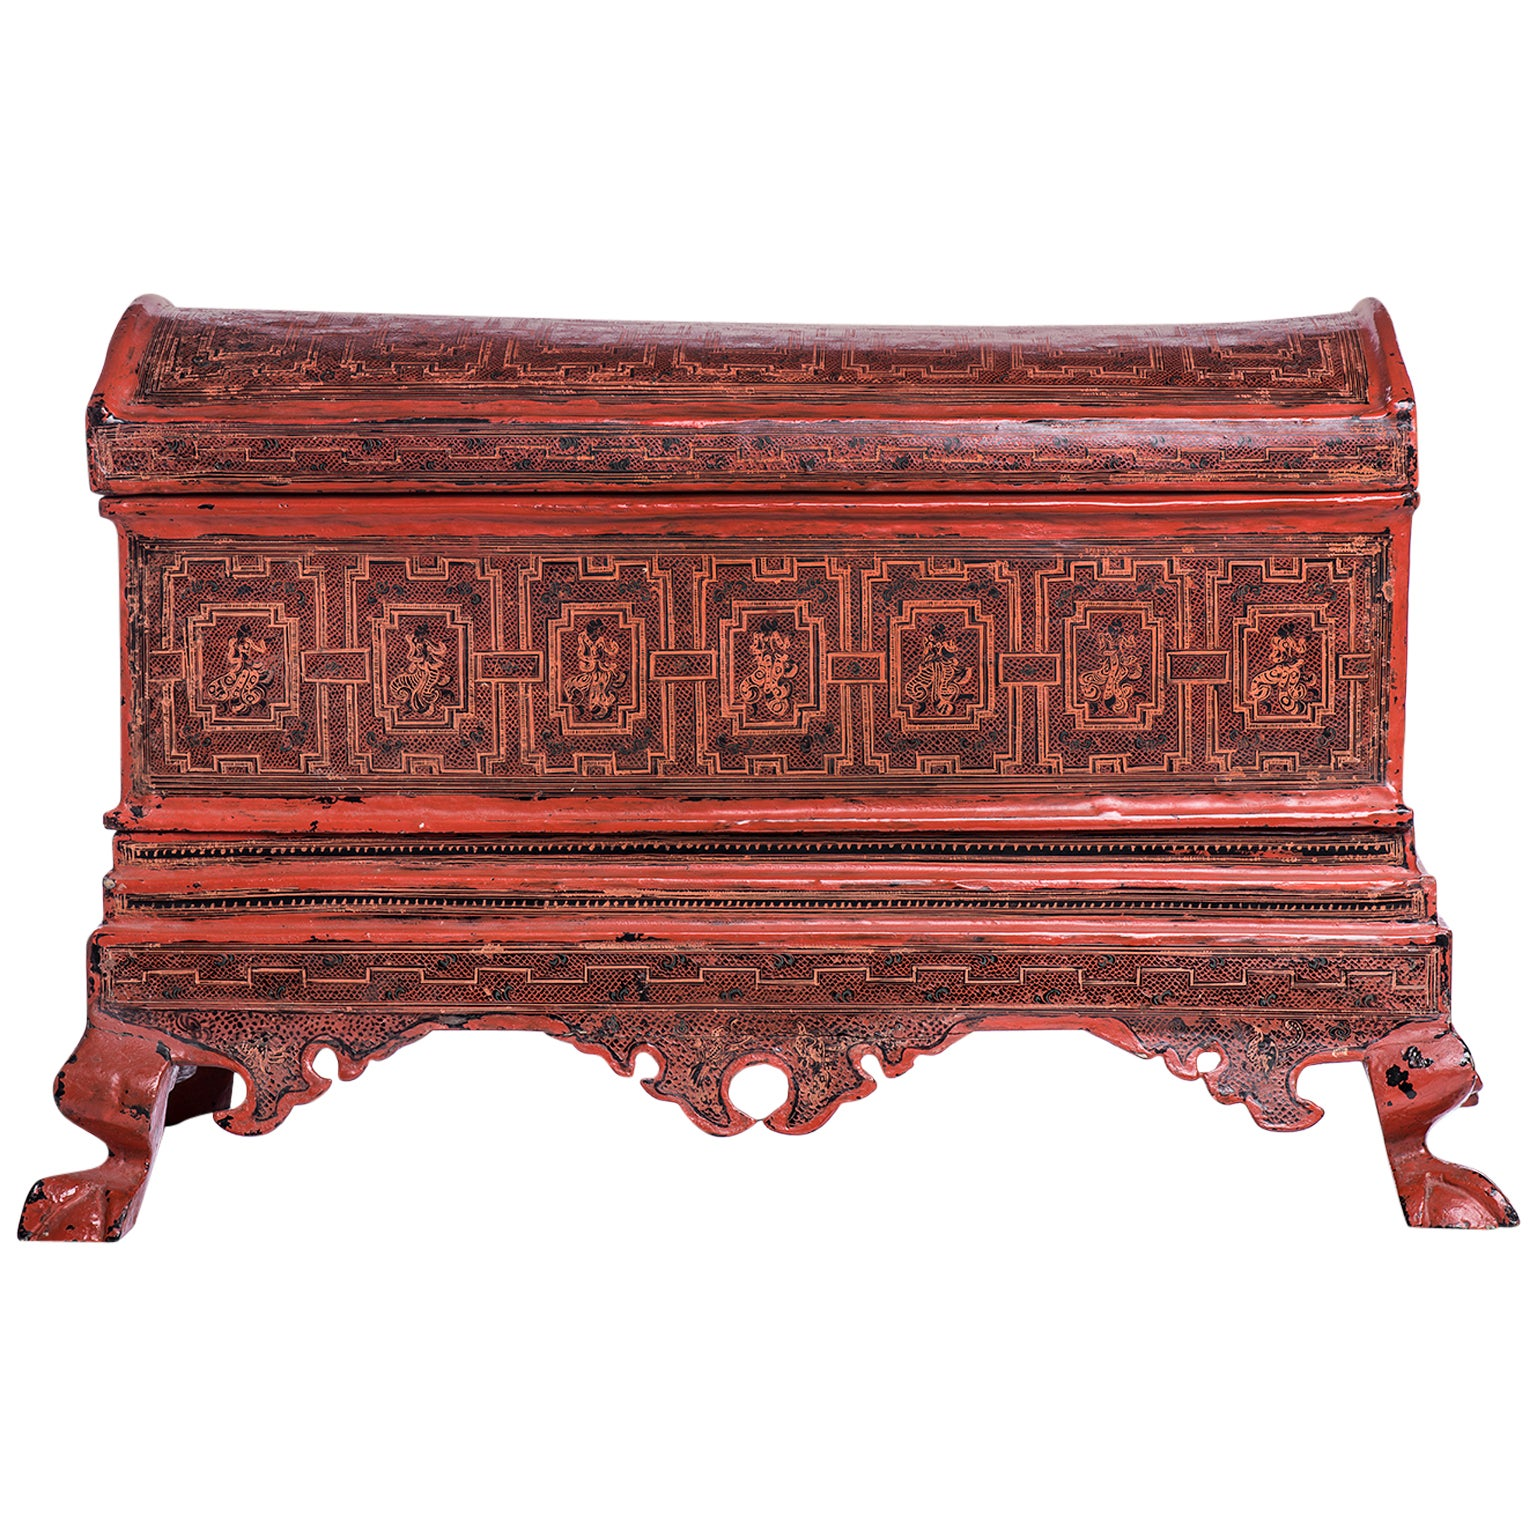 Burmese  Lacquered and Engraved Wooden Box